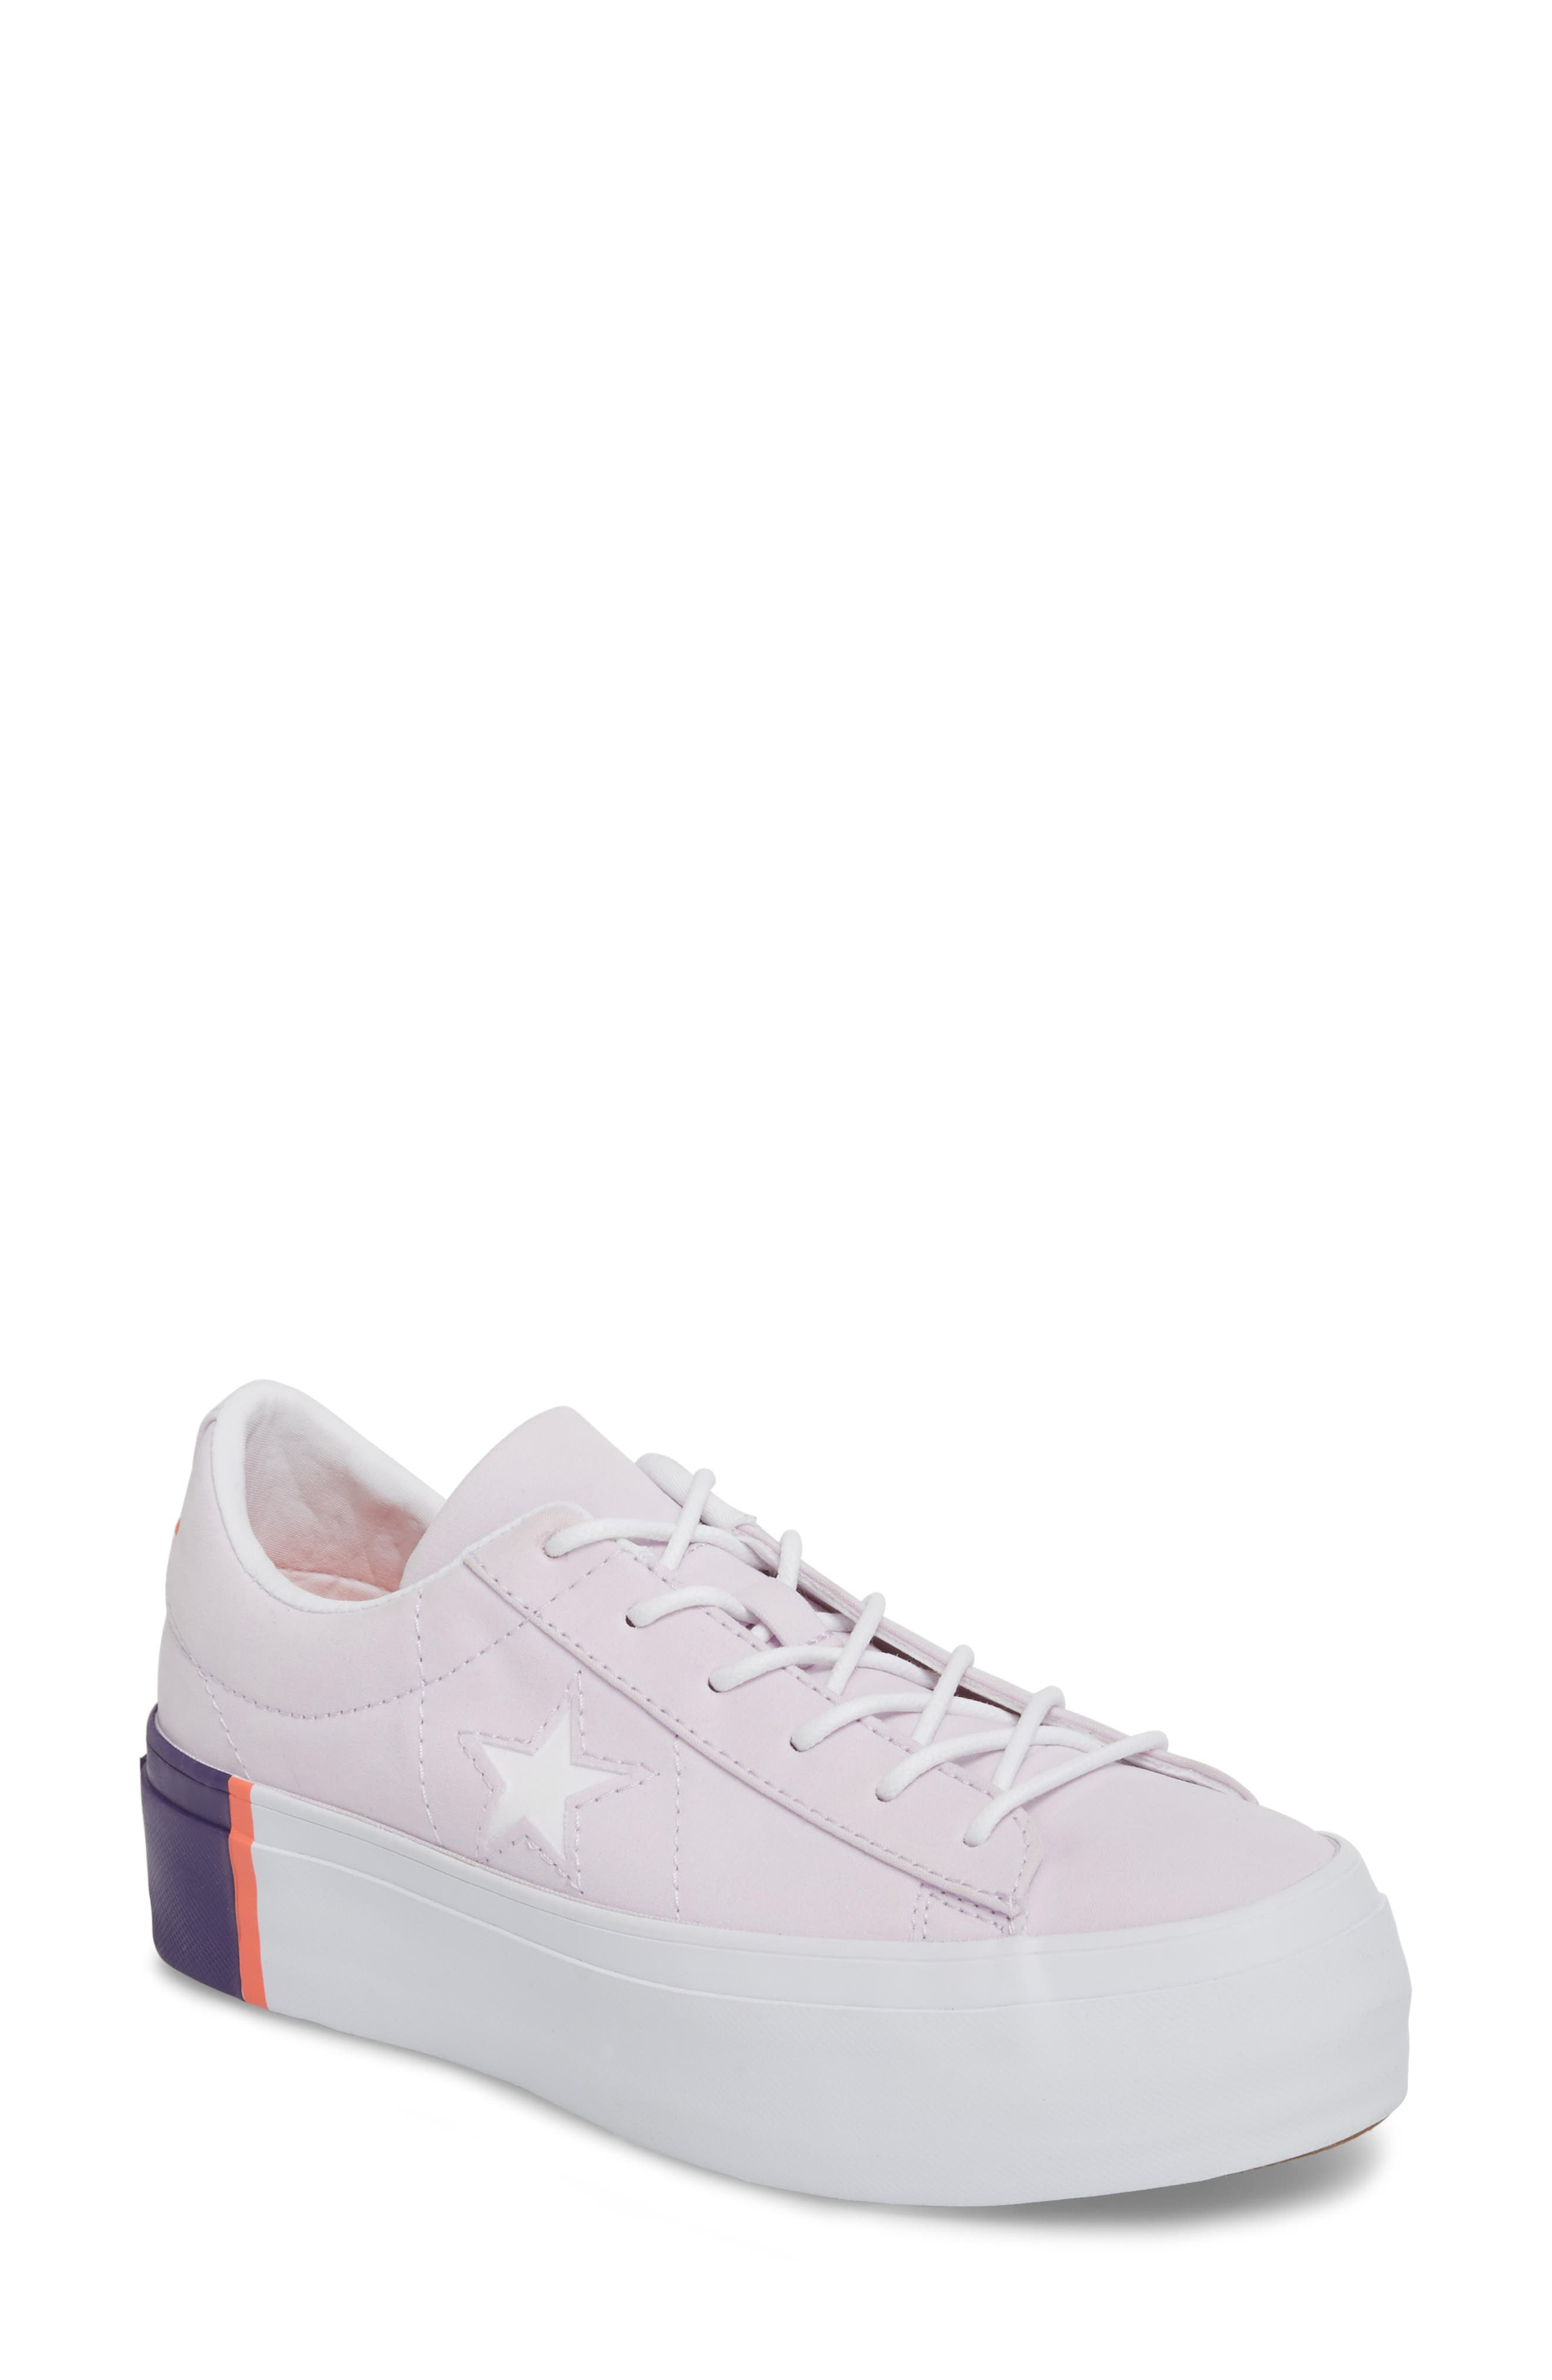 Chuck Taylor<sup>®</sup> All Star<sup>®</sup> One Star Platform Sneaker,                         Main,                         color, Barely Grape